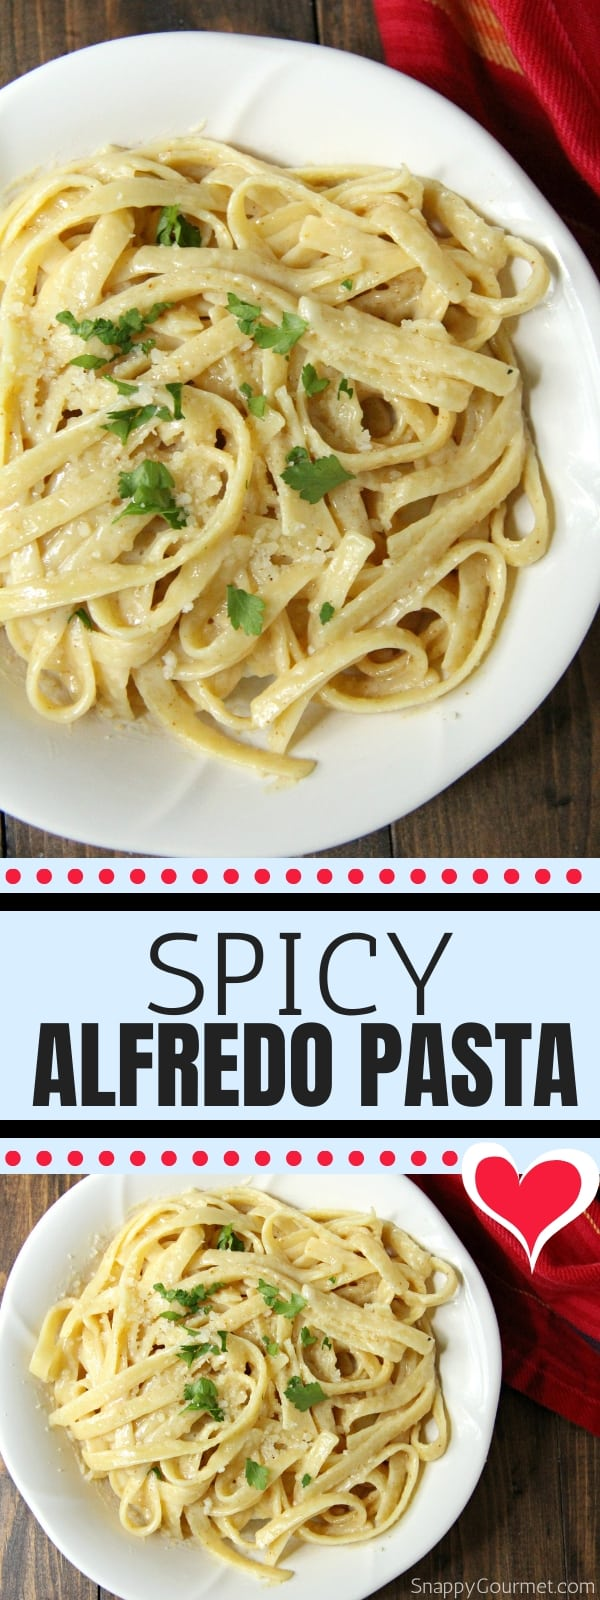 Spicy Alfredo collage